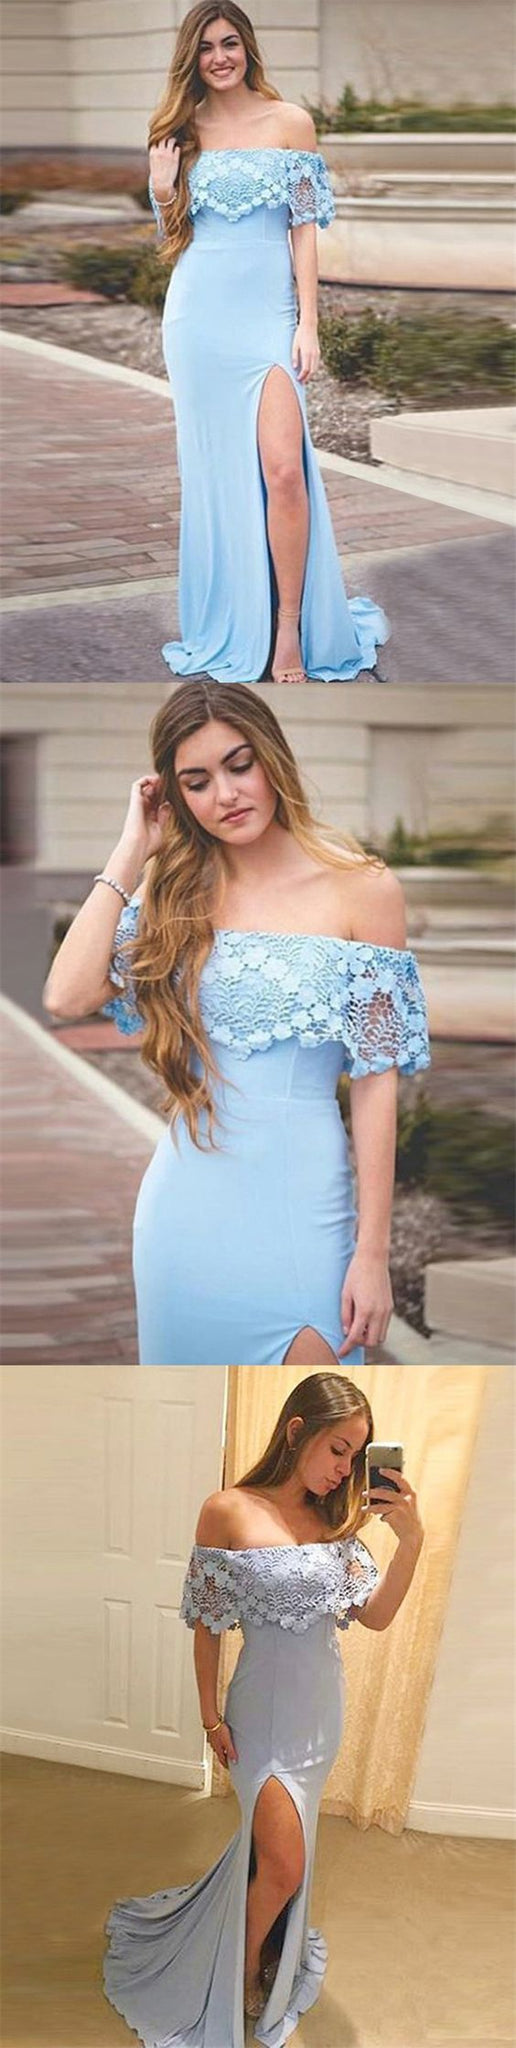 Mermaid Off-the-Shoulder Sky Blue Stretch Satin Prom Dress with Lace,D0645